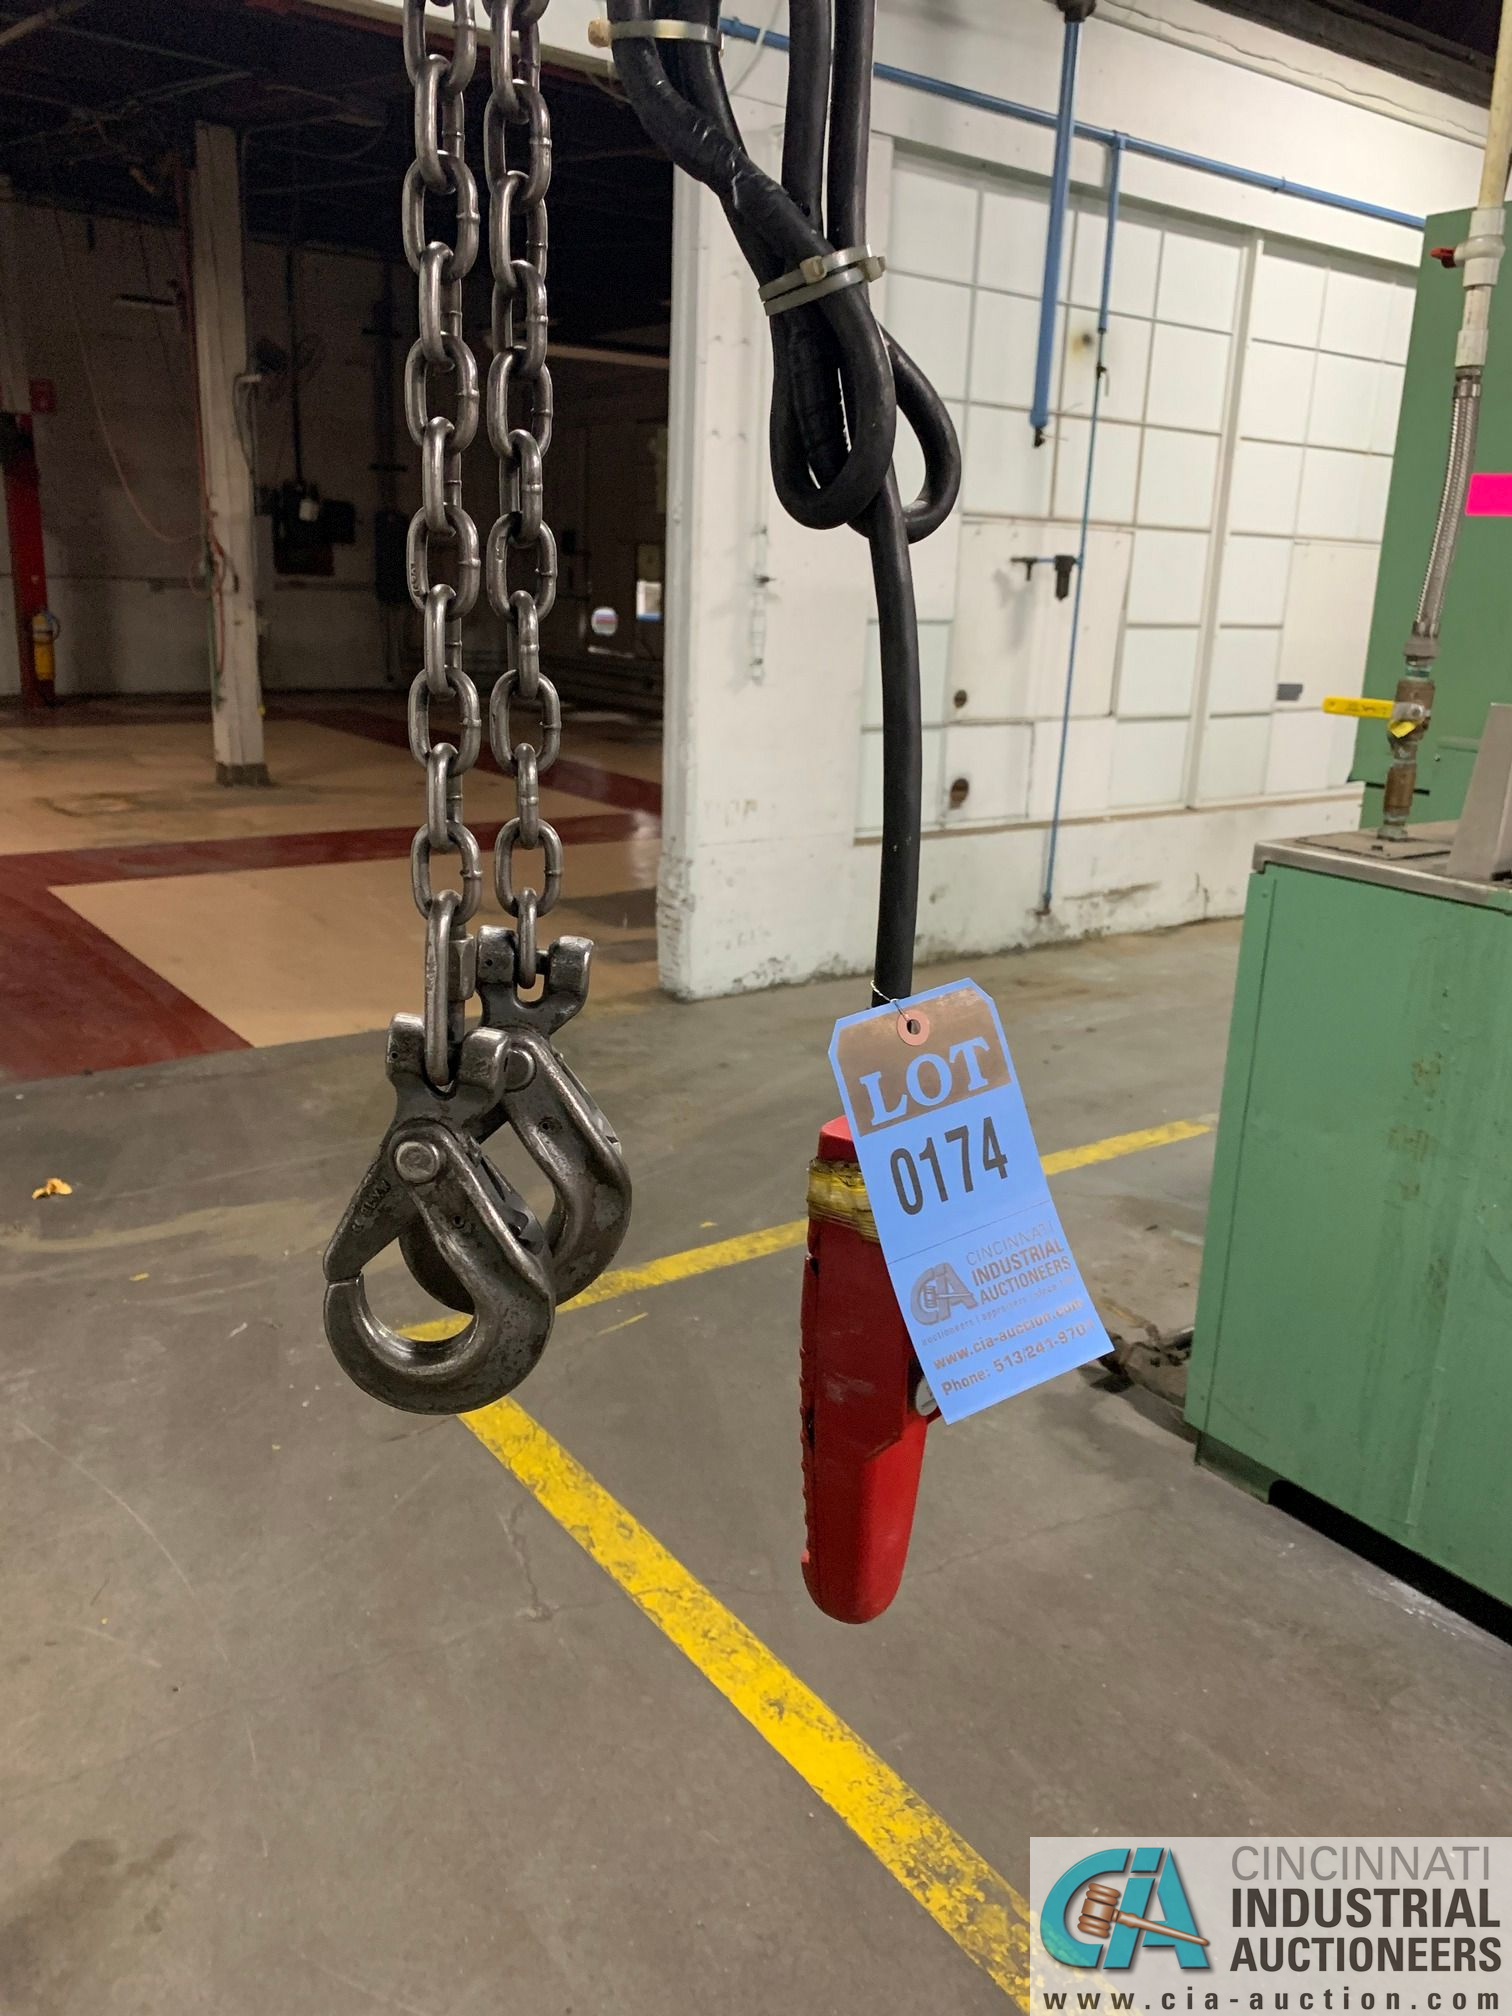 1/2 HP DAYTON PENDANT CONTROL CHAIN HOIST WITH TROLLEY - Image 2 of 3